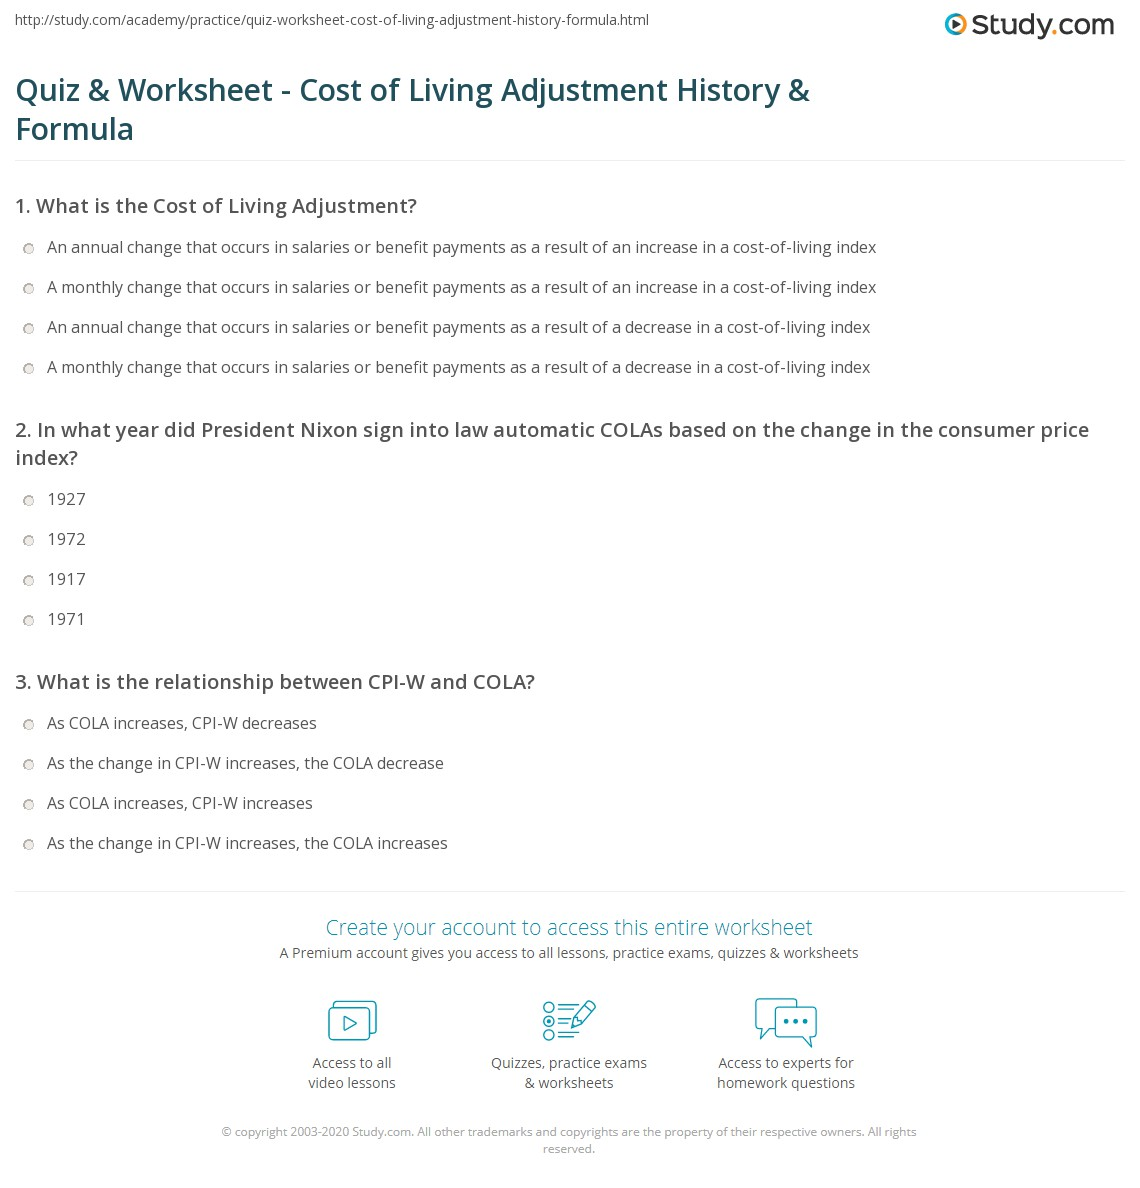 Quiz & Worksheet - Cost of Living Adjustment History & Formula ...